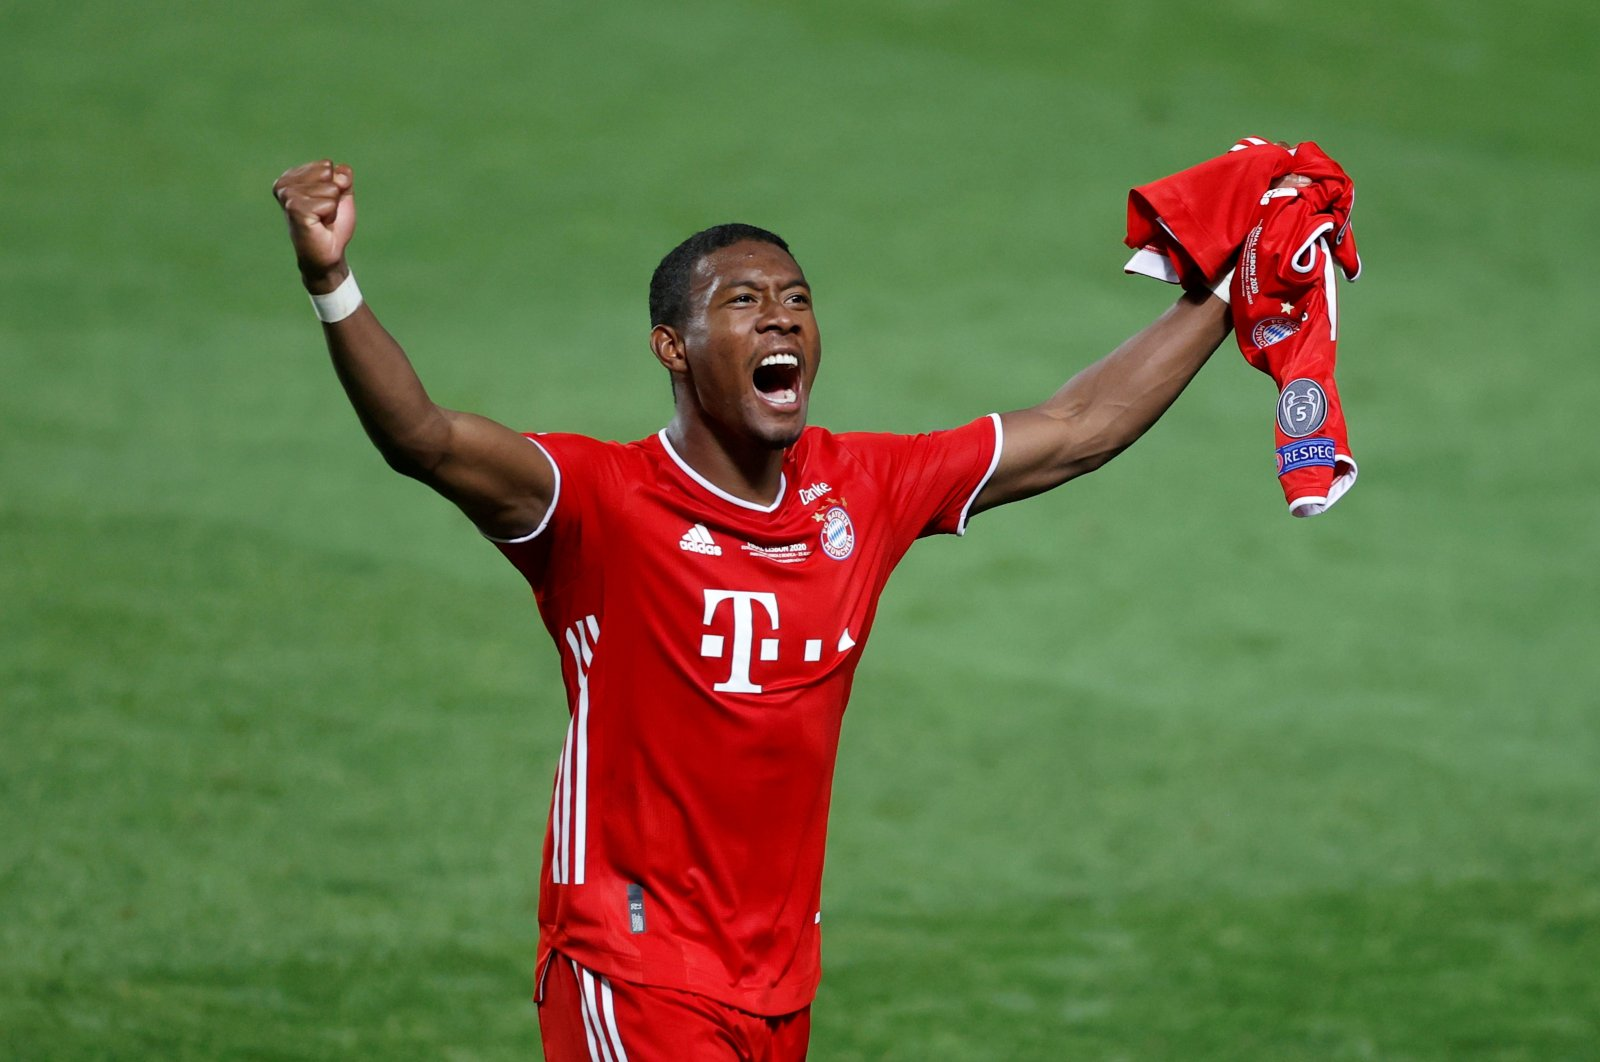 Bayern Munich's David Alaba celebrates after winning the Champions League in Estadio da Luz, Lisbon, Portugal on Aug. 23, 2020. (Reuters Photo)